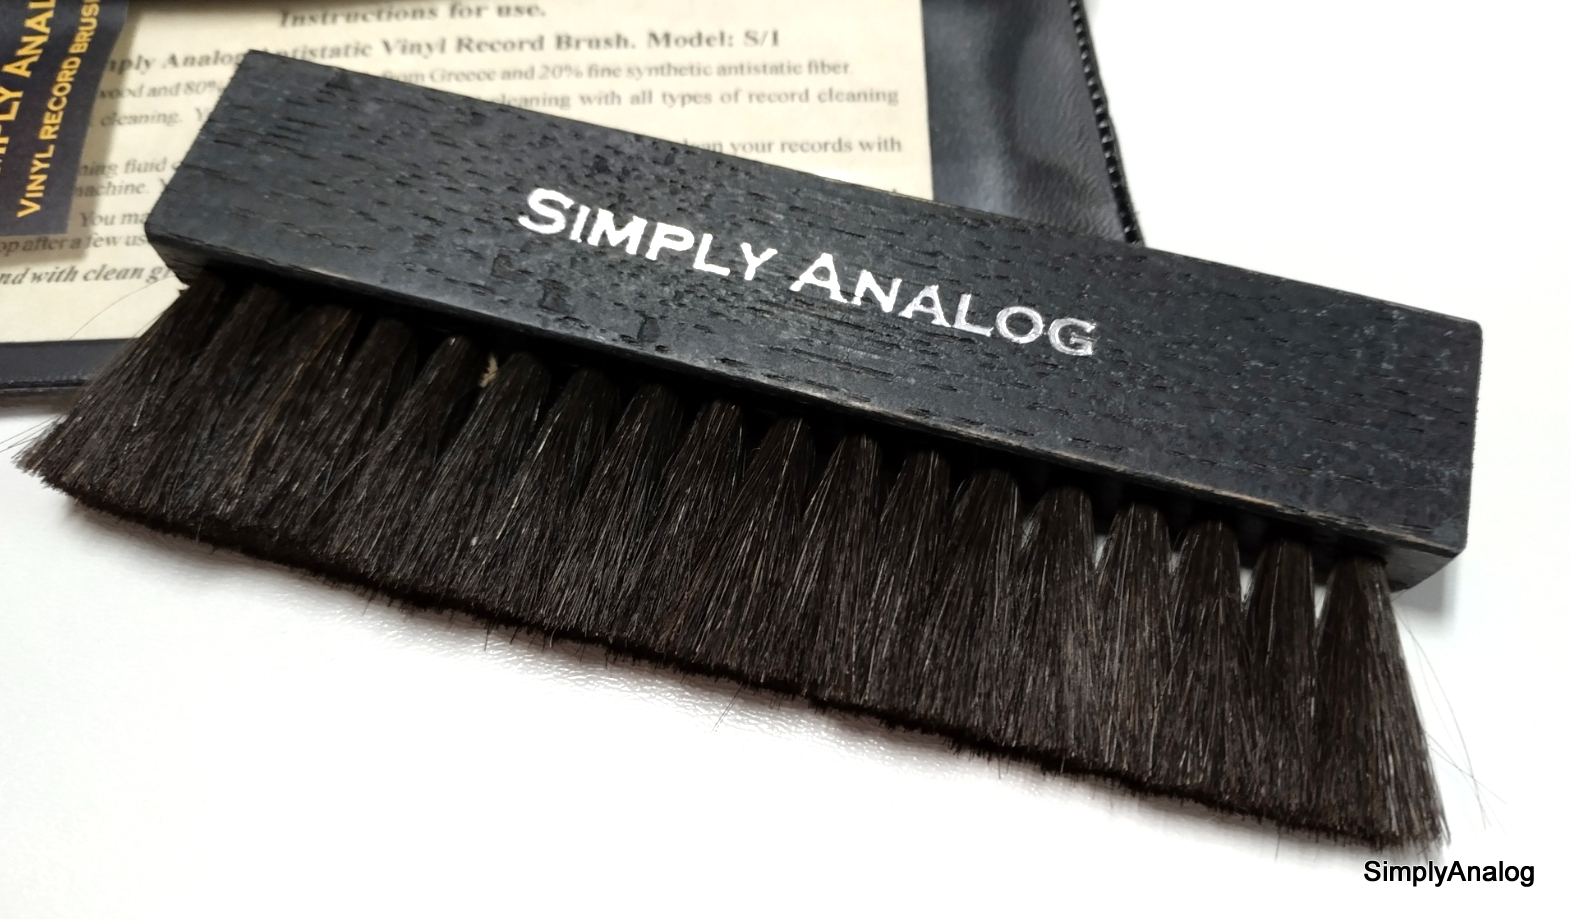 Simply Analog  - Anti-static Wooden Brush Cleaner S/1 Black